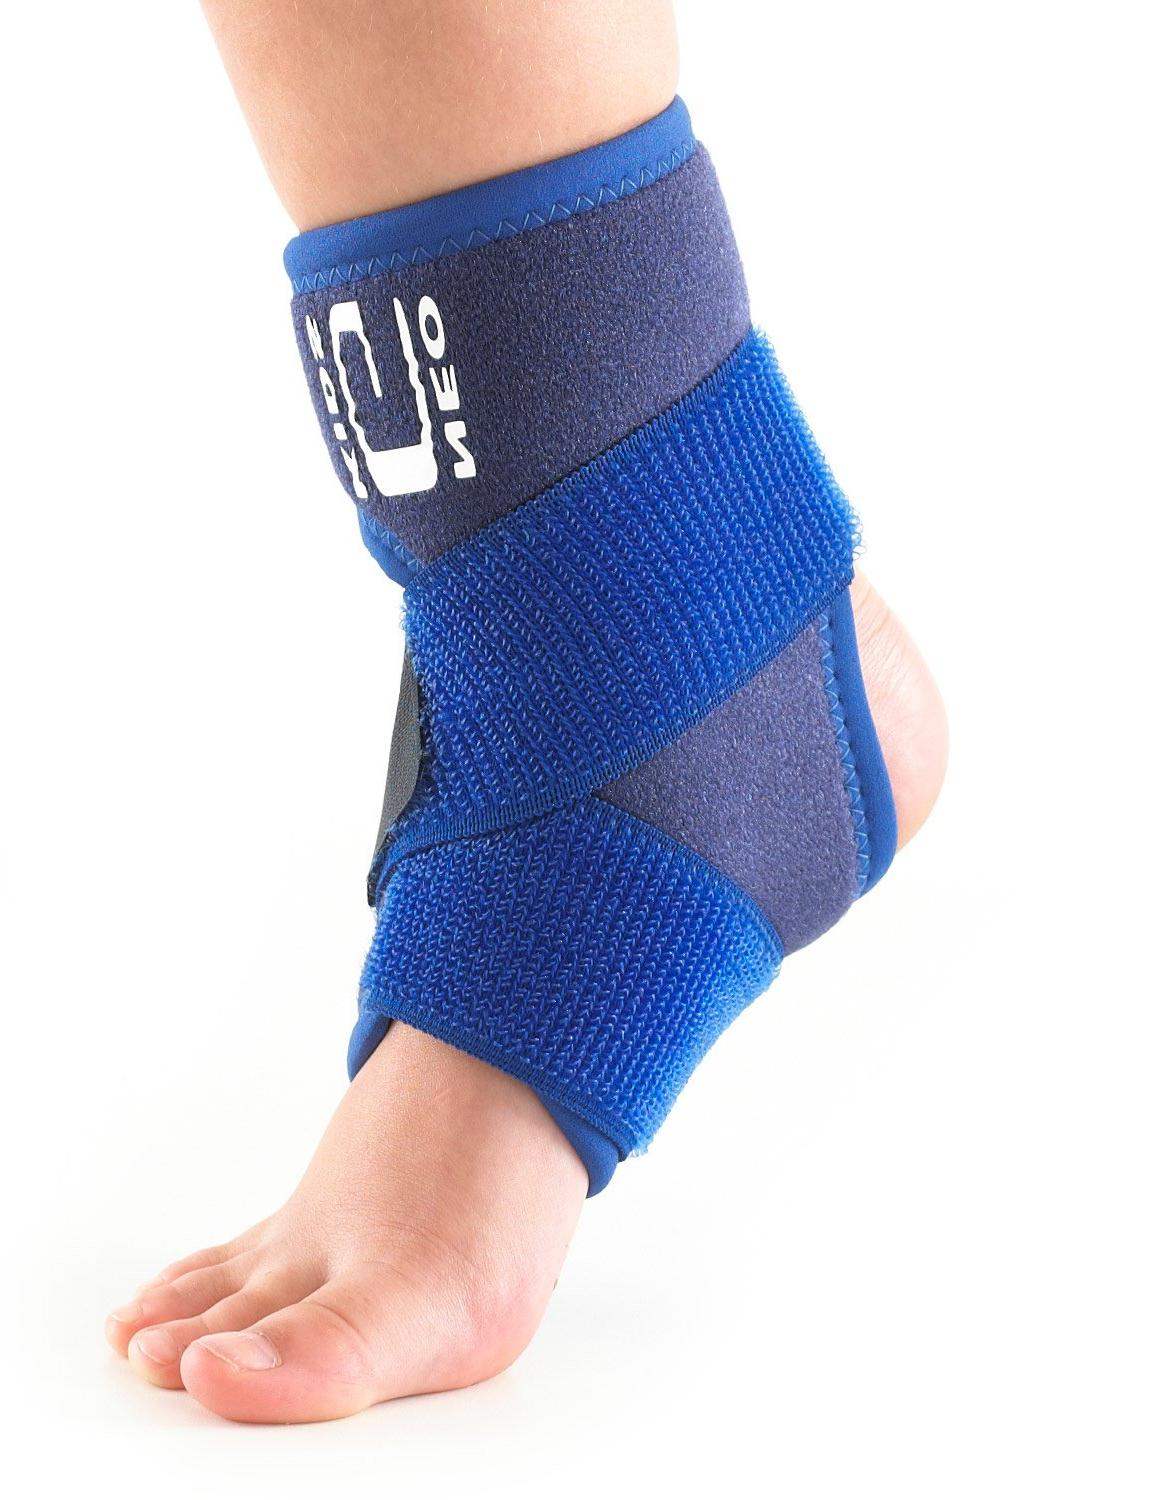 Ankle Brace For Juvenile SHIP